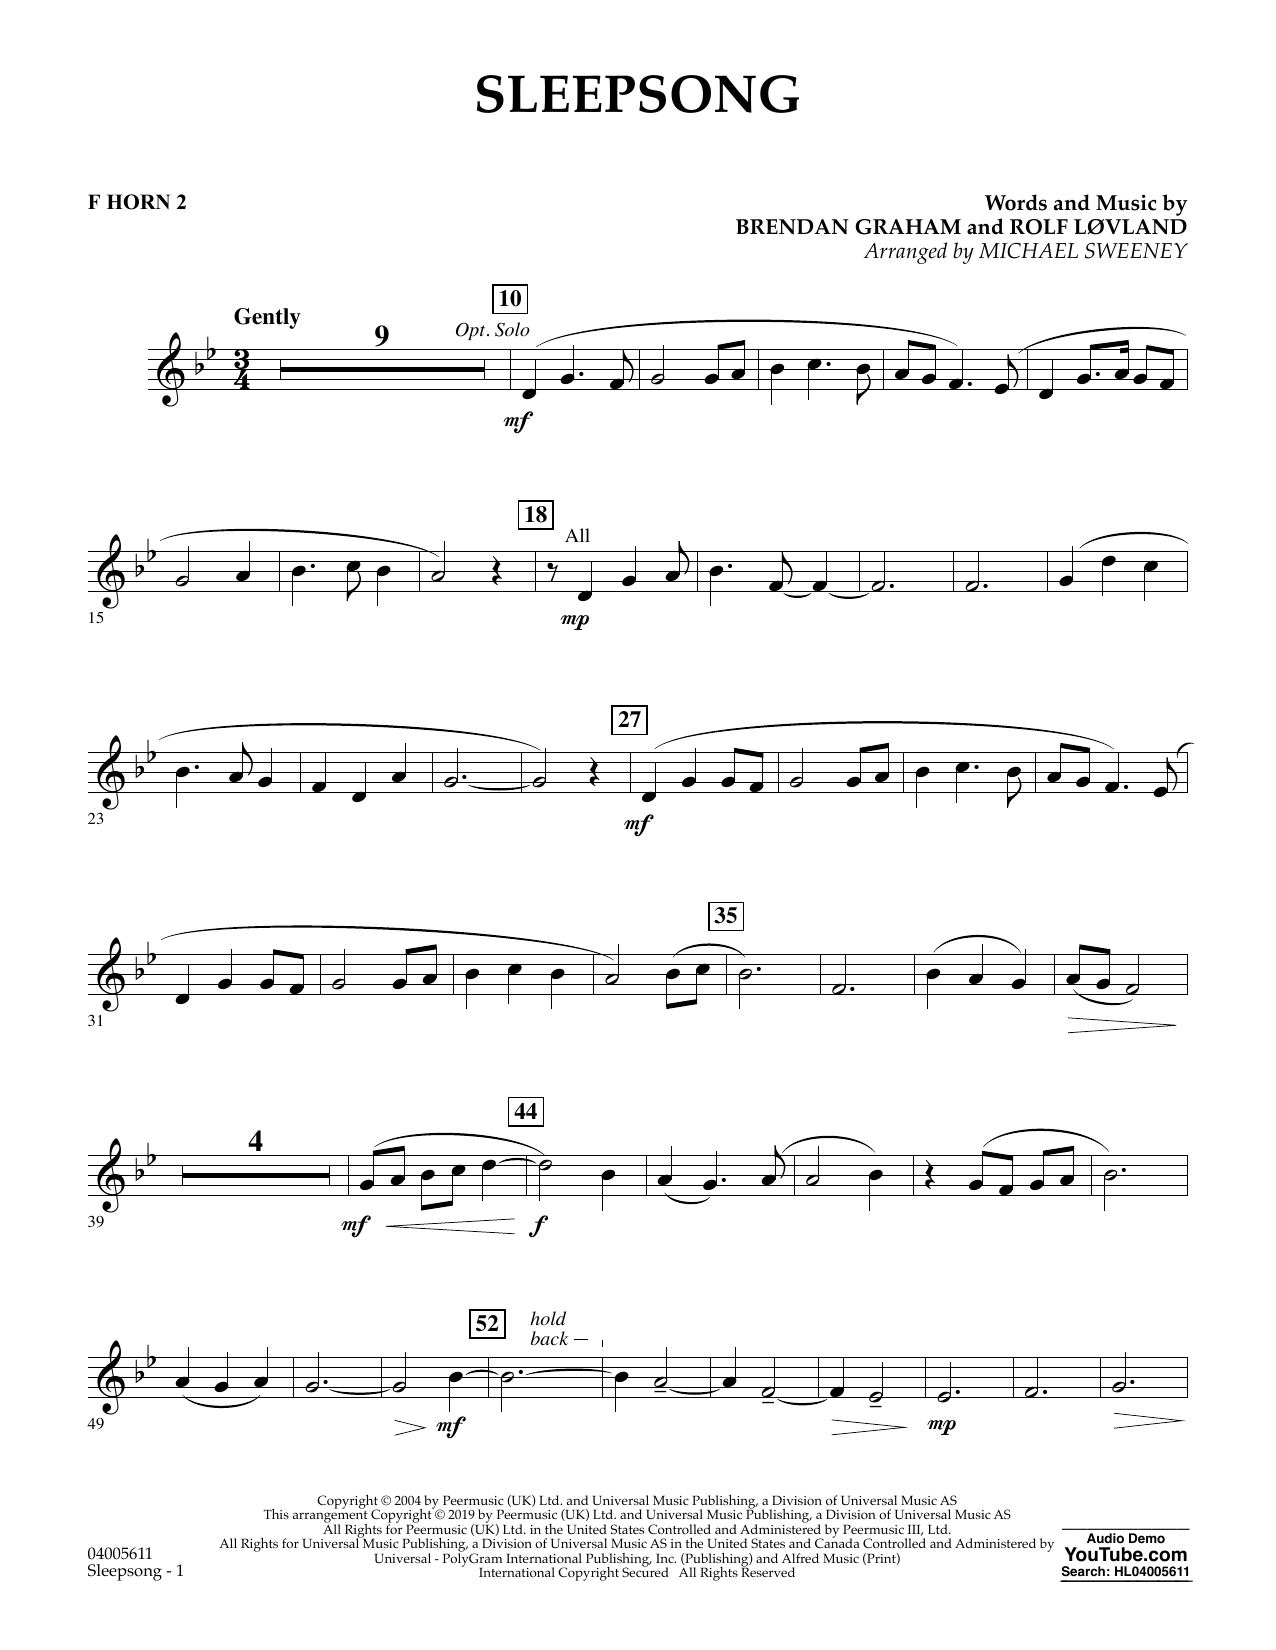 Secret Garden Sleepsong (arr. Michael Sweeney) - F Horn 2 sheet music preview music notes and score for Concert Band including 2 page(s)